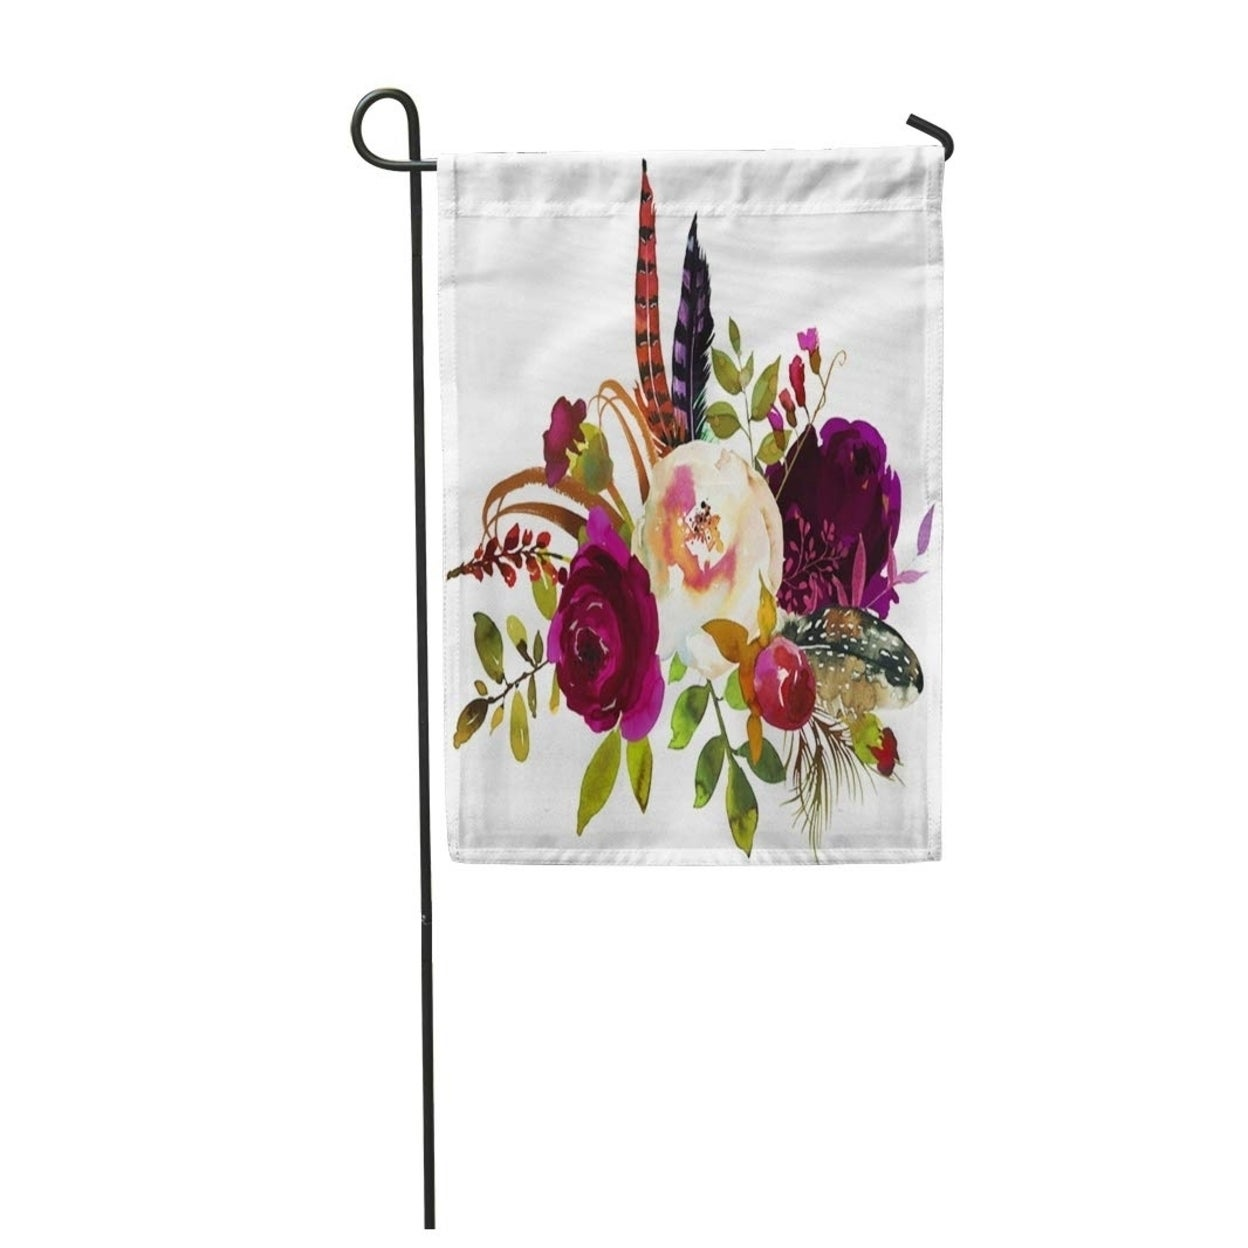 Watercolor Boho Burgundy Violet White Floral Bouquet Flowers And Feathers Garden Flag Decorative Flag House Banner 12x18 On Sale Overstock 31365294